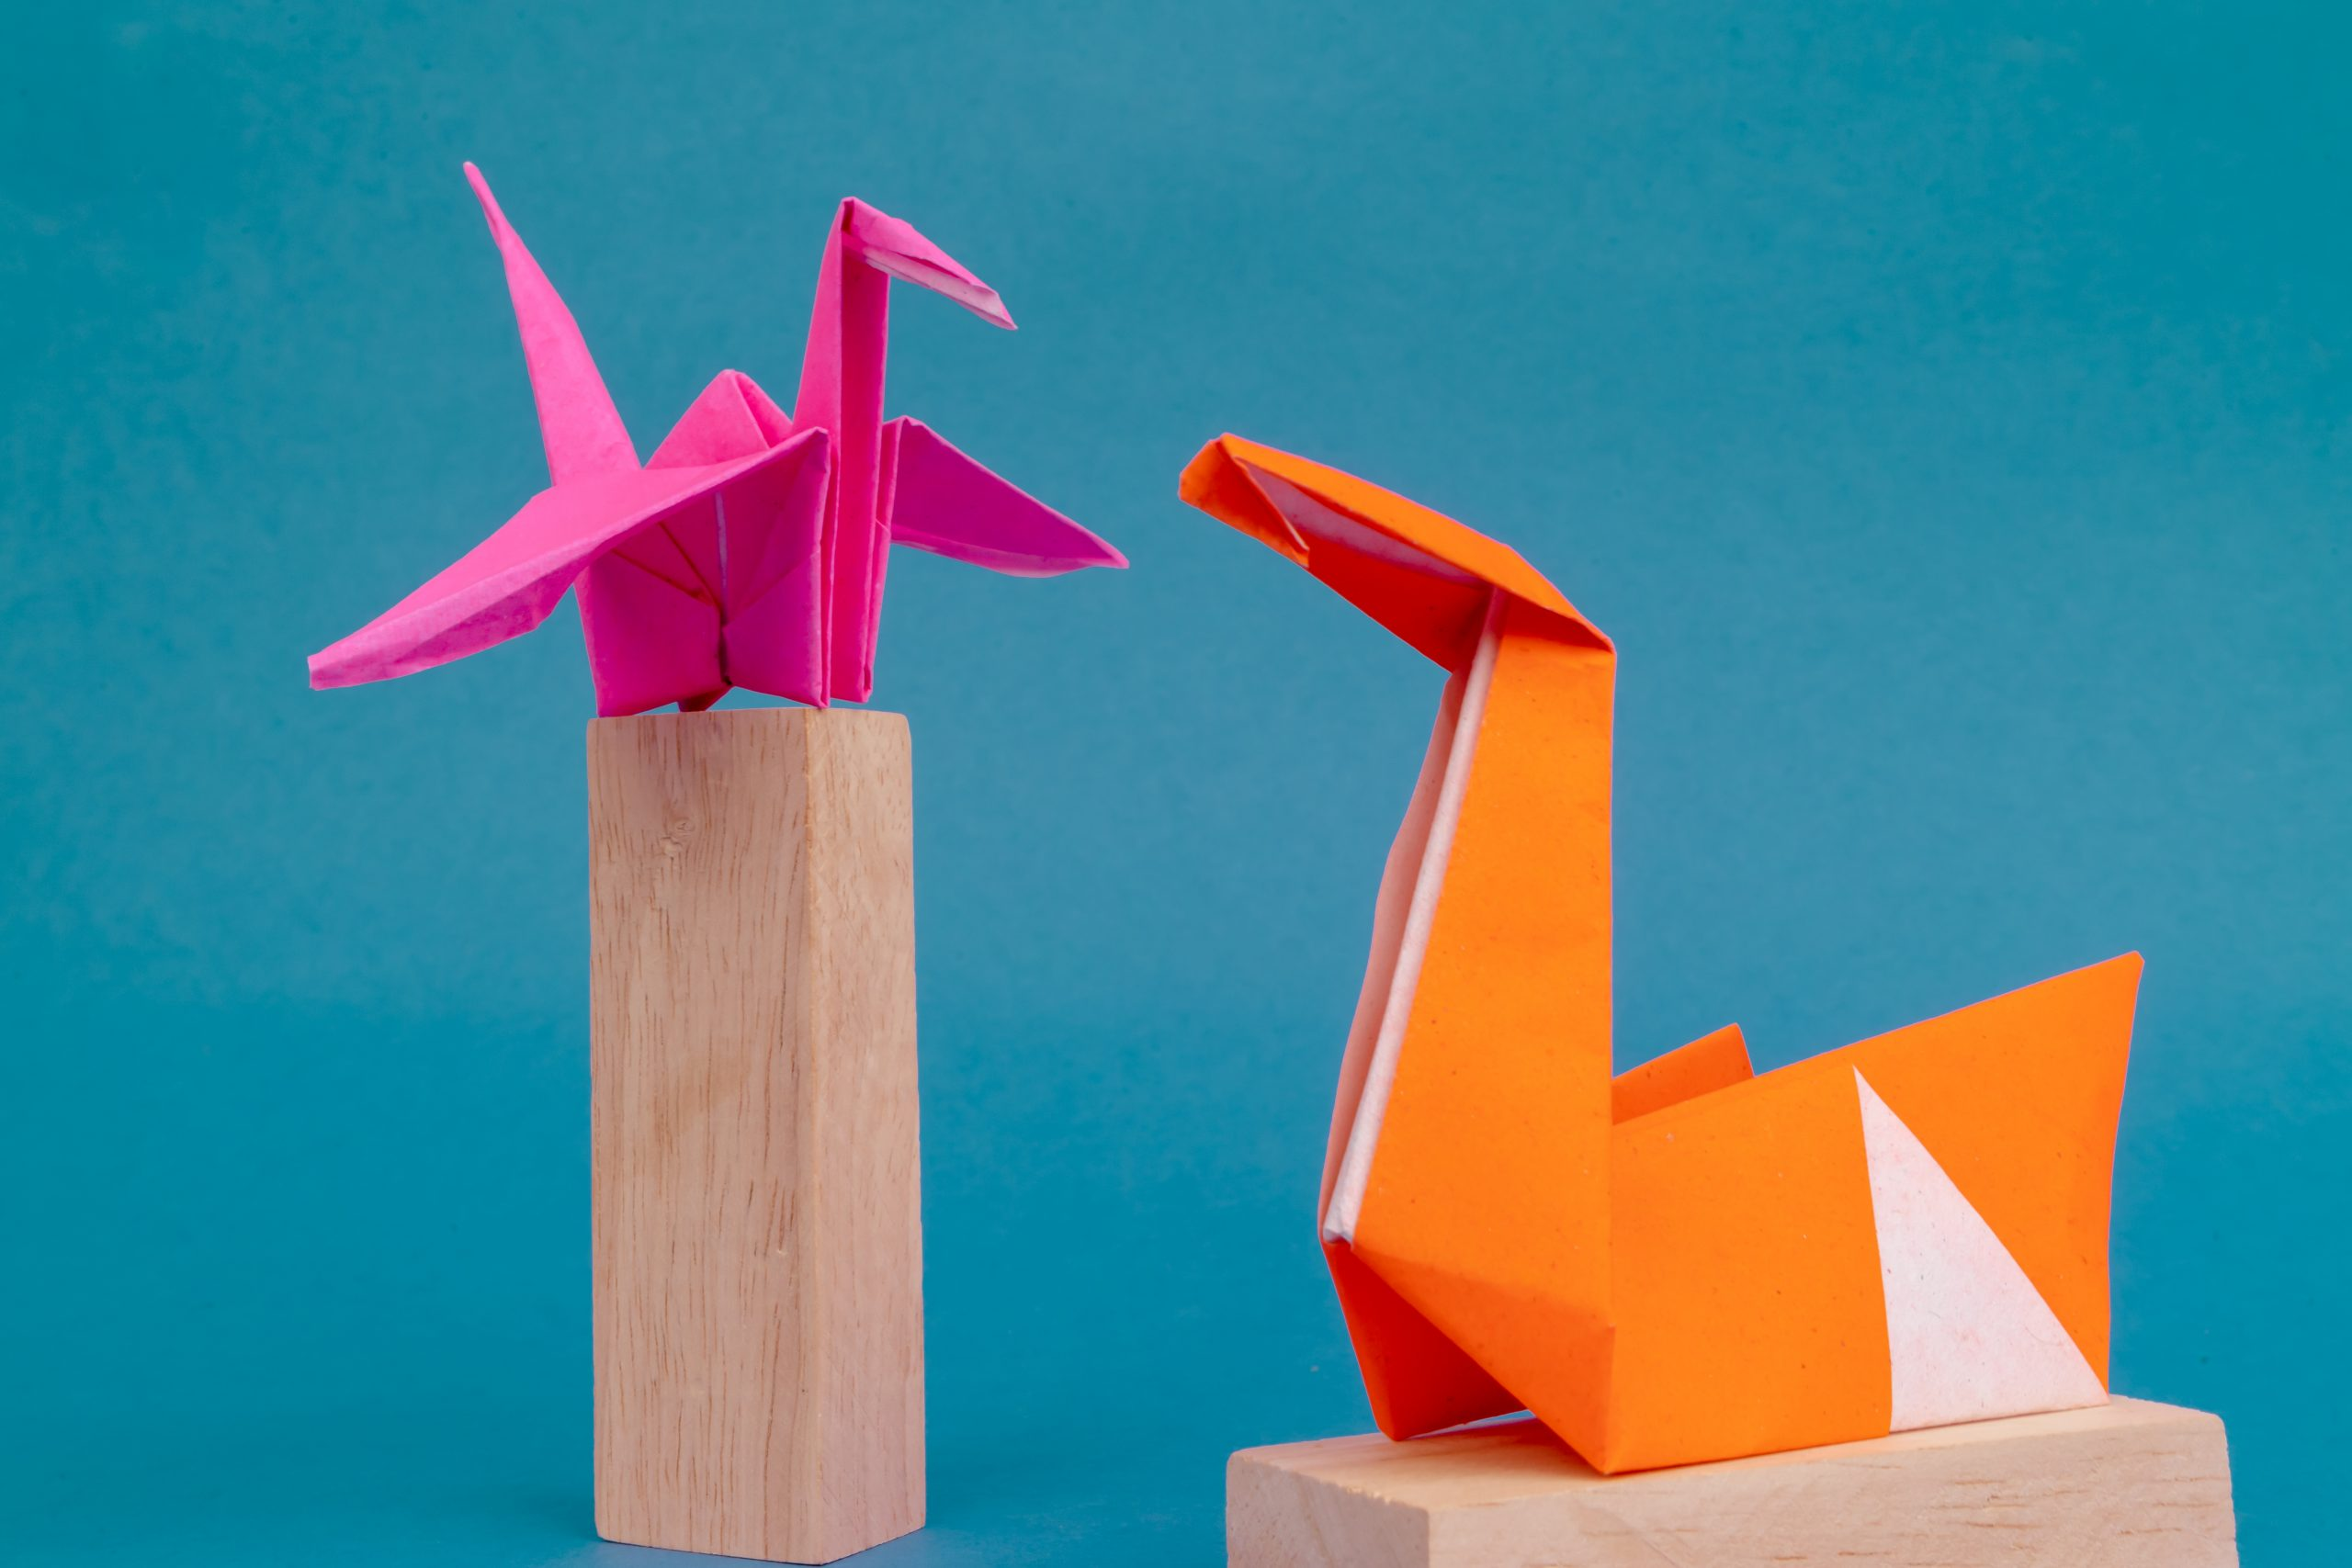 Swan and crane origami on wooden blocks